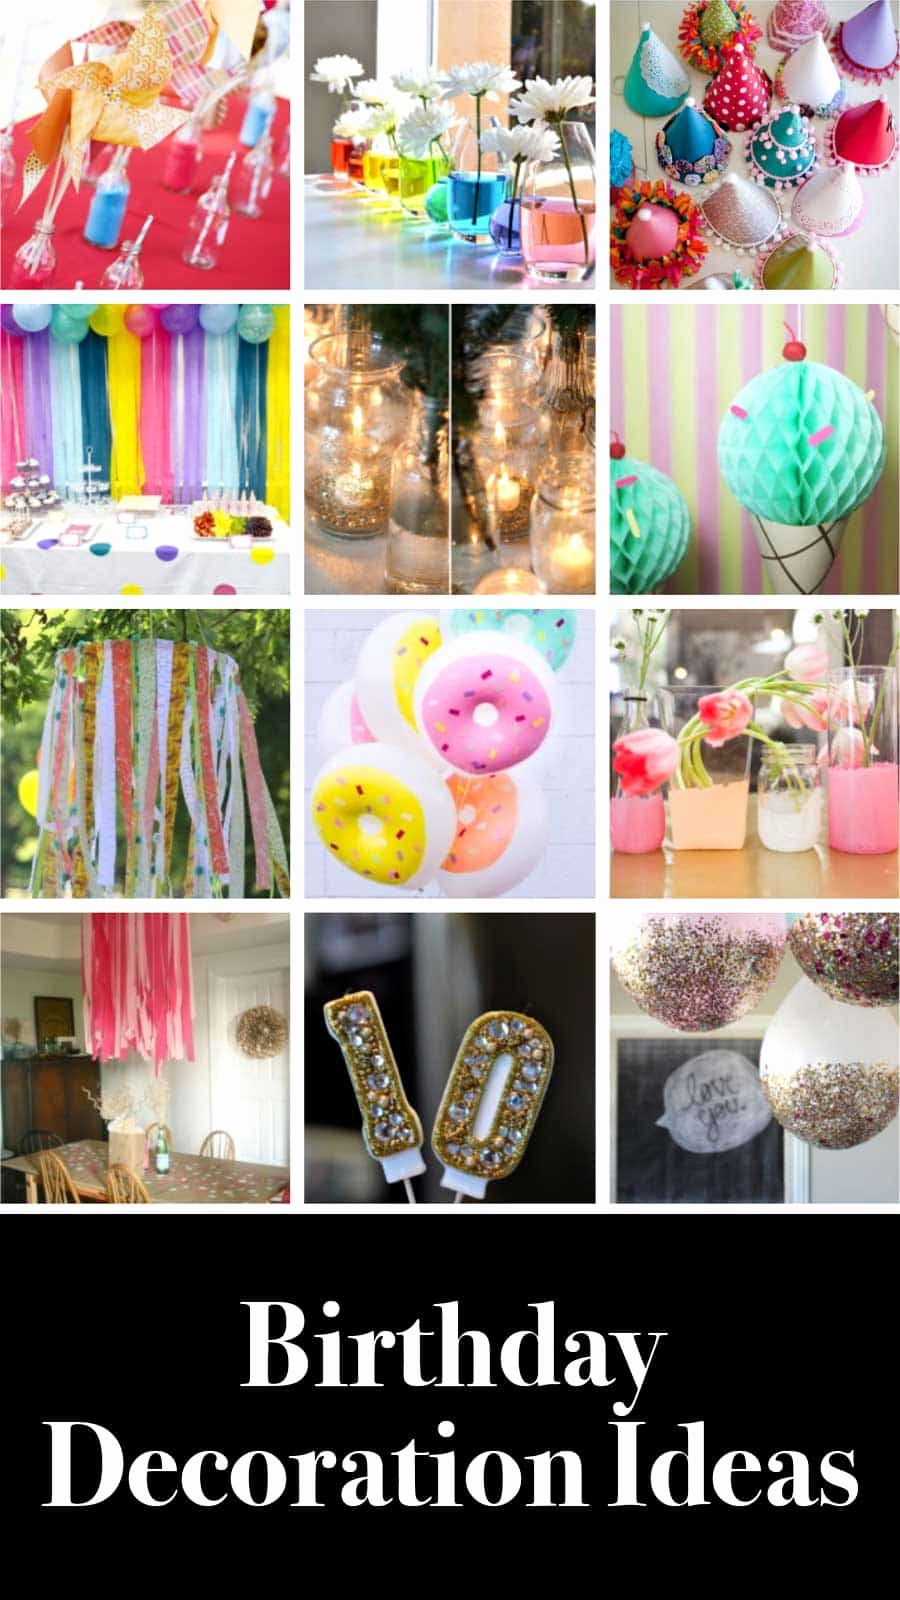 Simple Birthday Decoration Ideas at Home for Mom Elegant 12 Easy Diy Birthday Decoration Ideas 2020